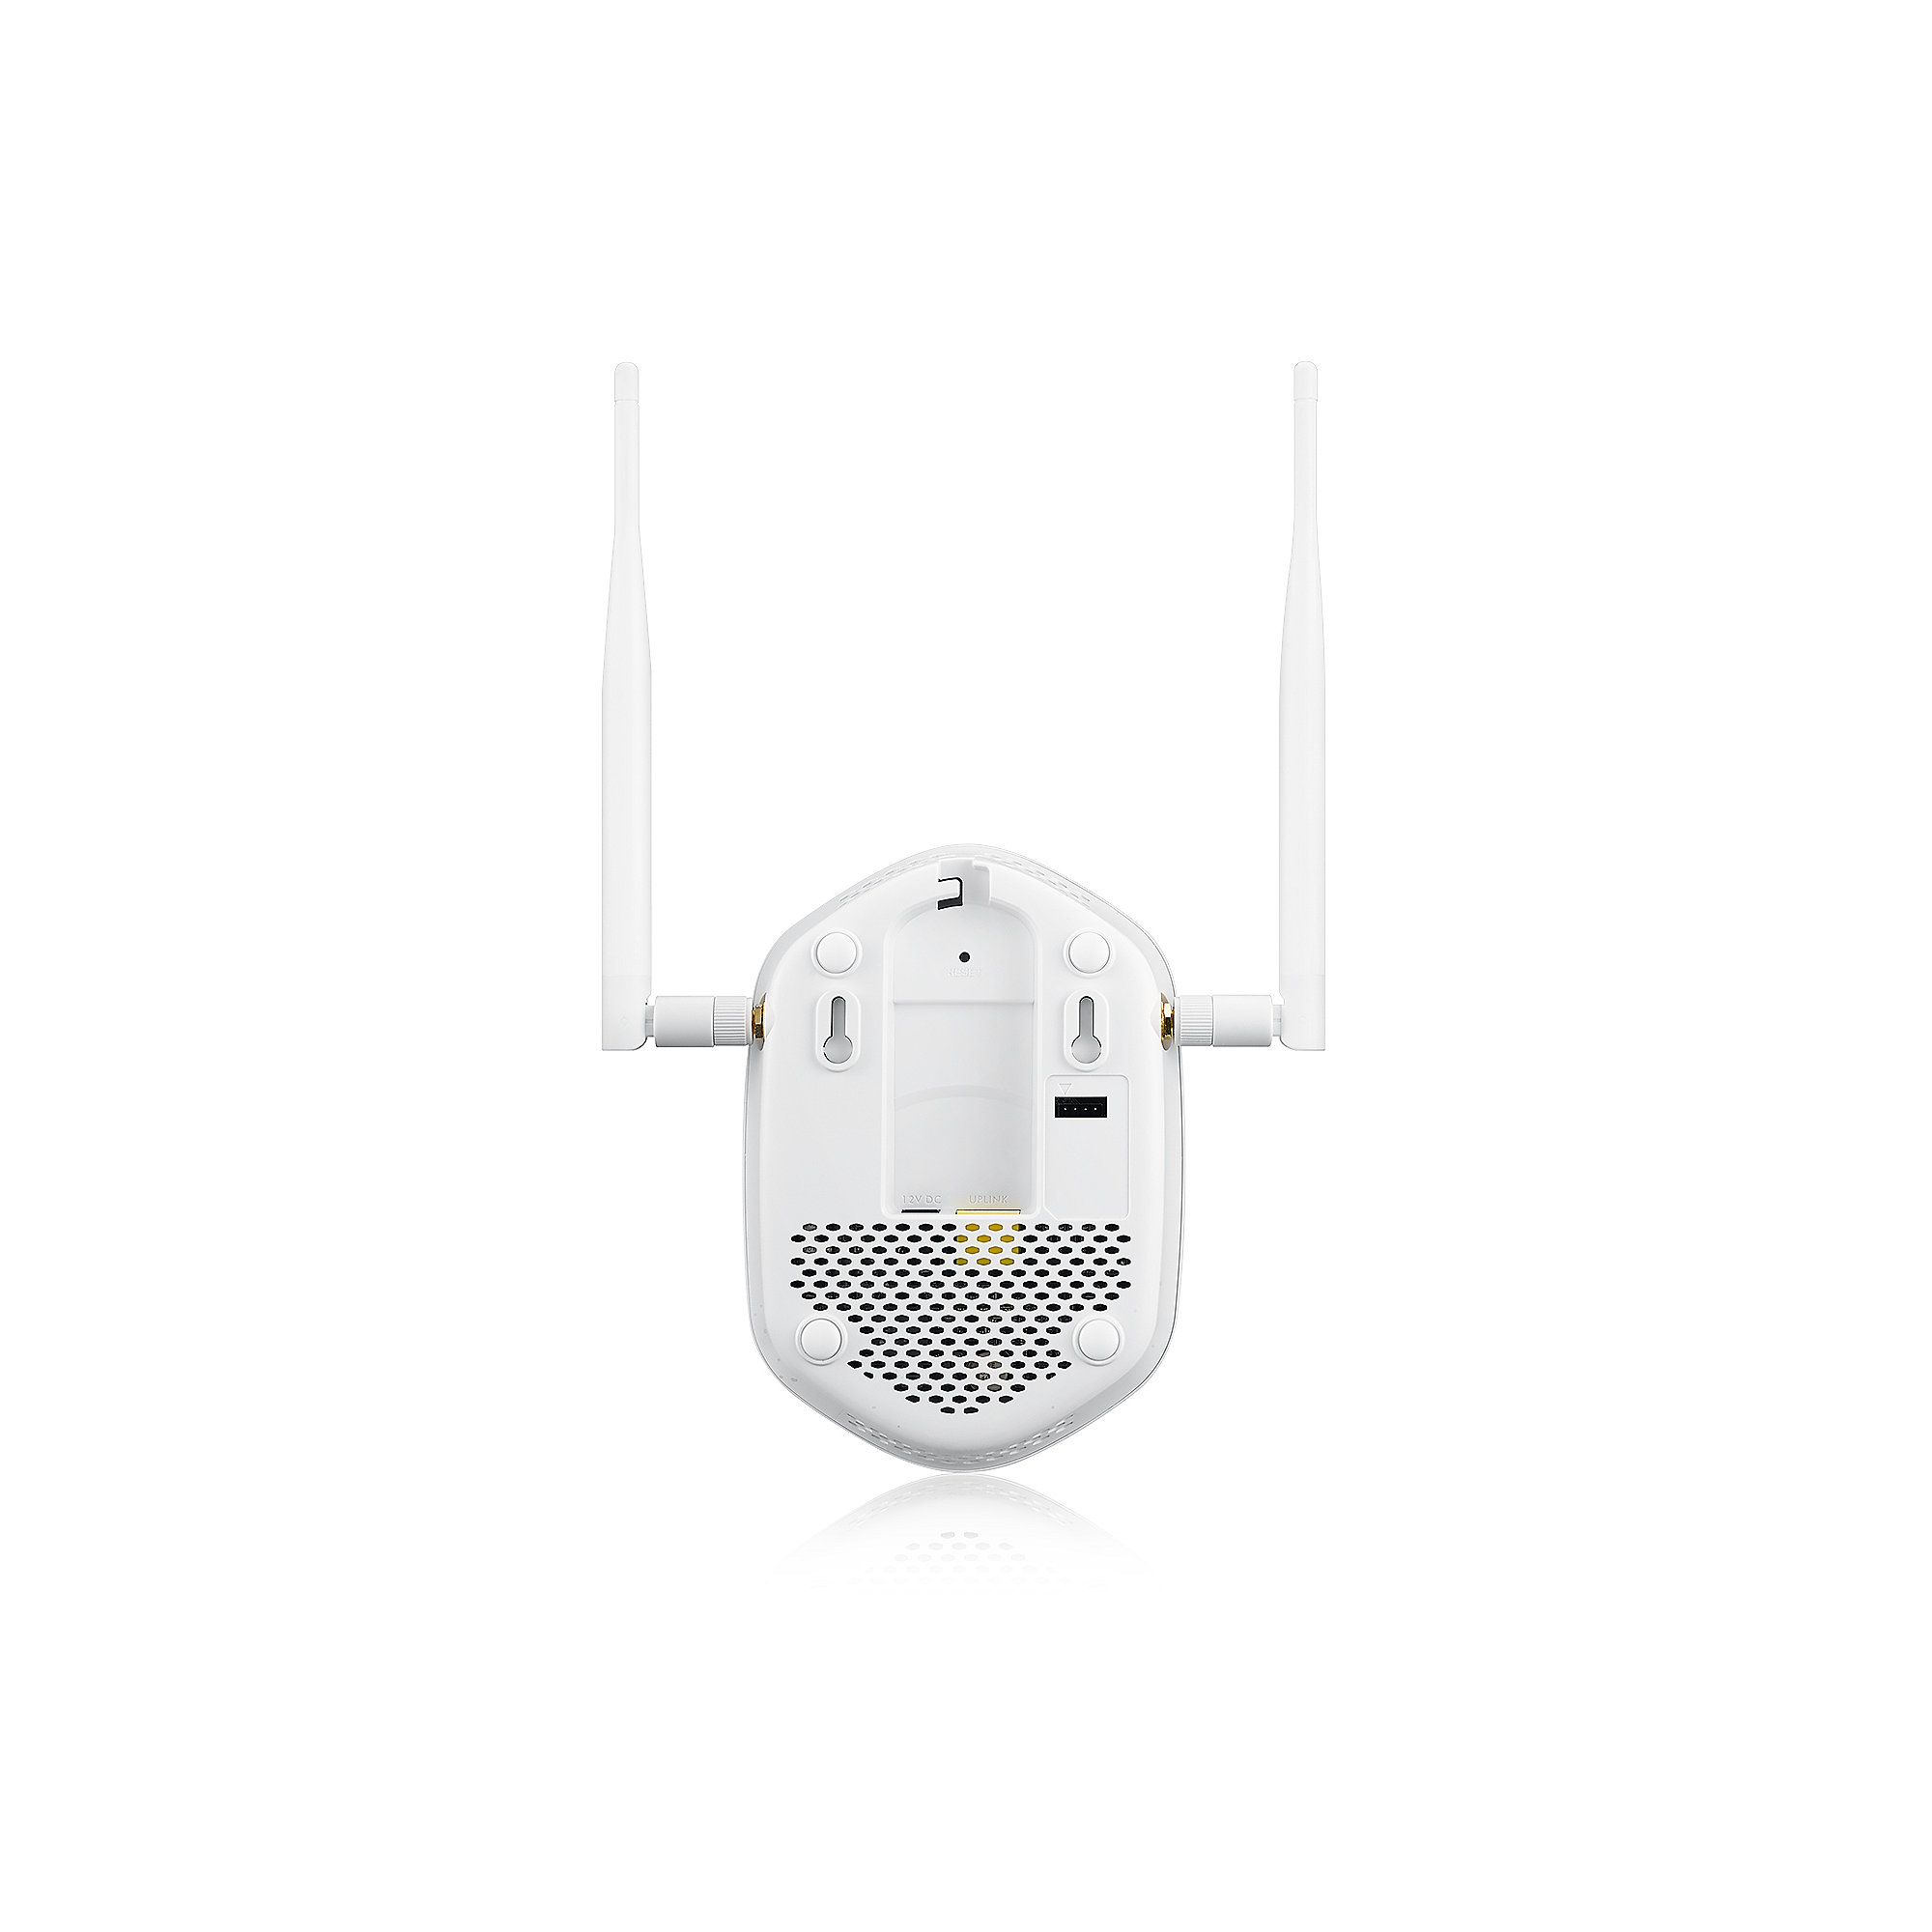 ZyXEL NWA1100-NH WLAN 802.11b/g/n Access Point 300Mbit/s